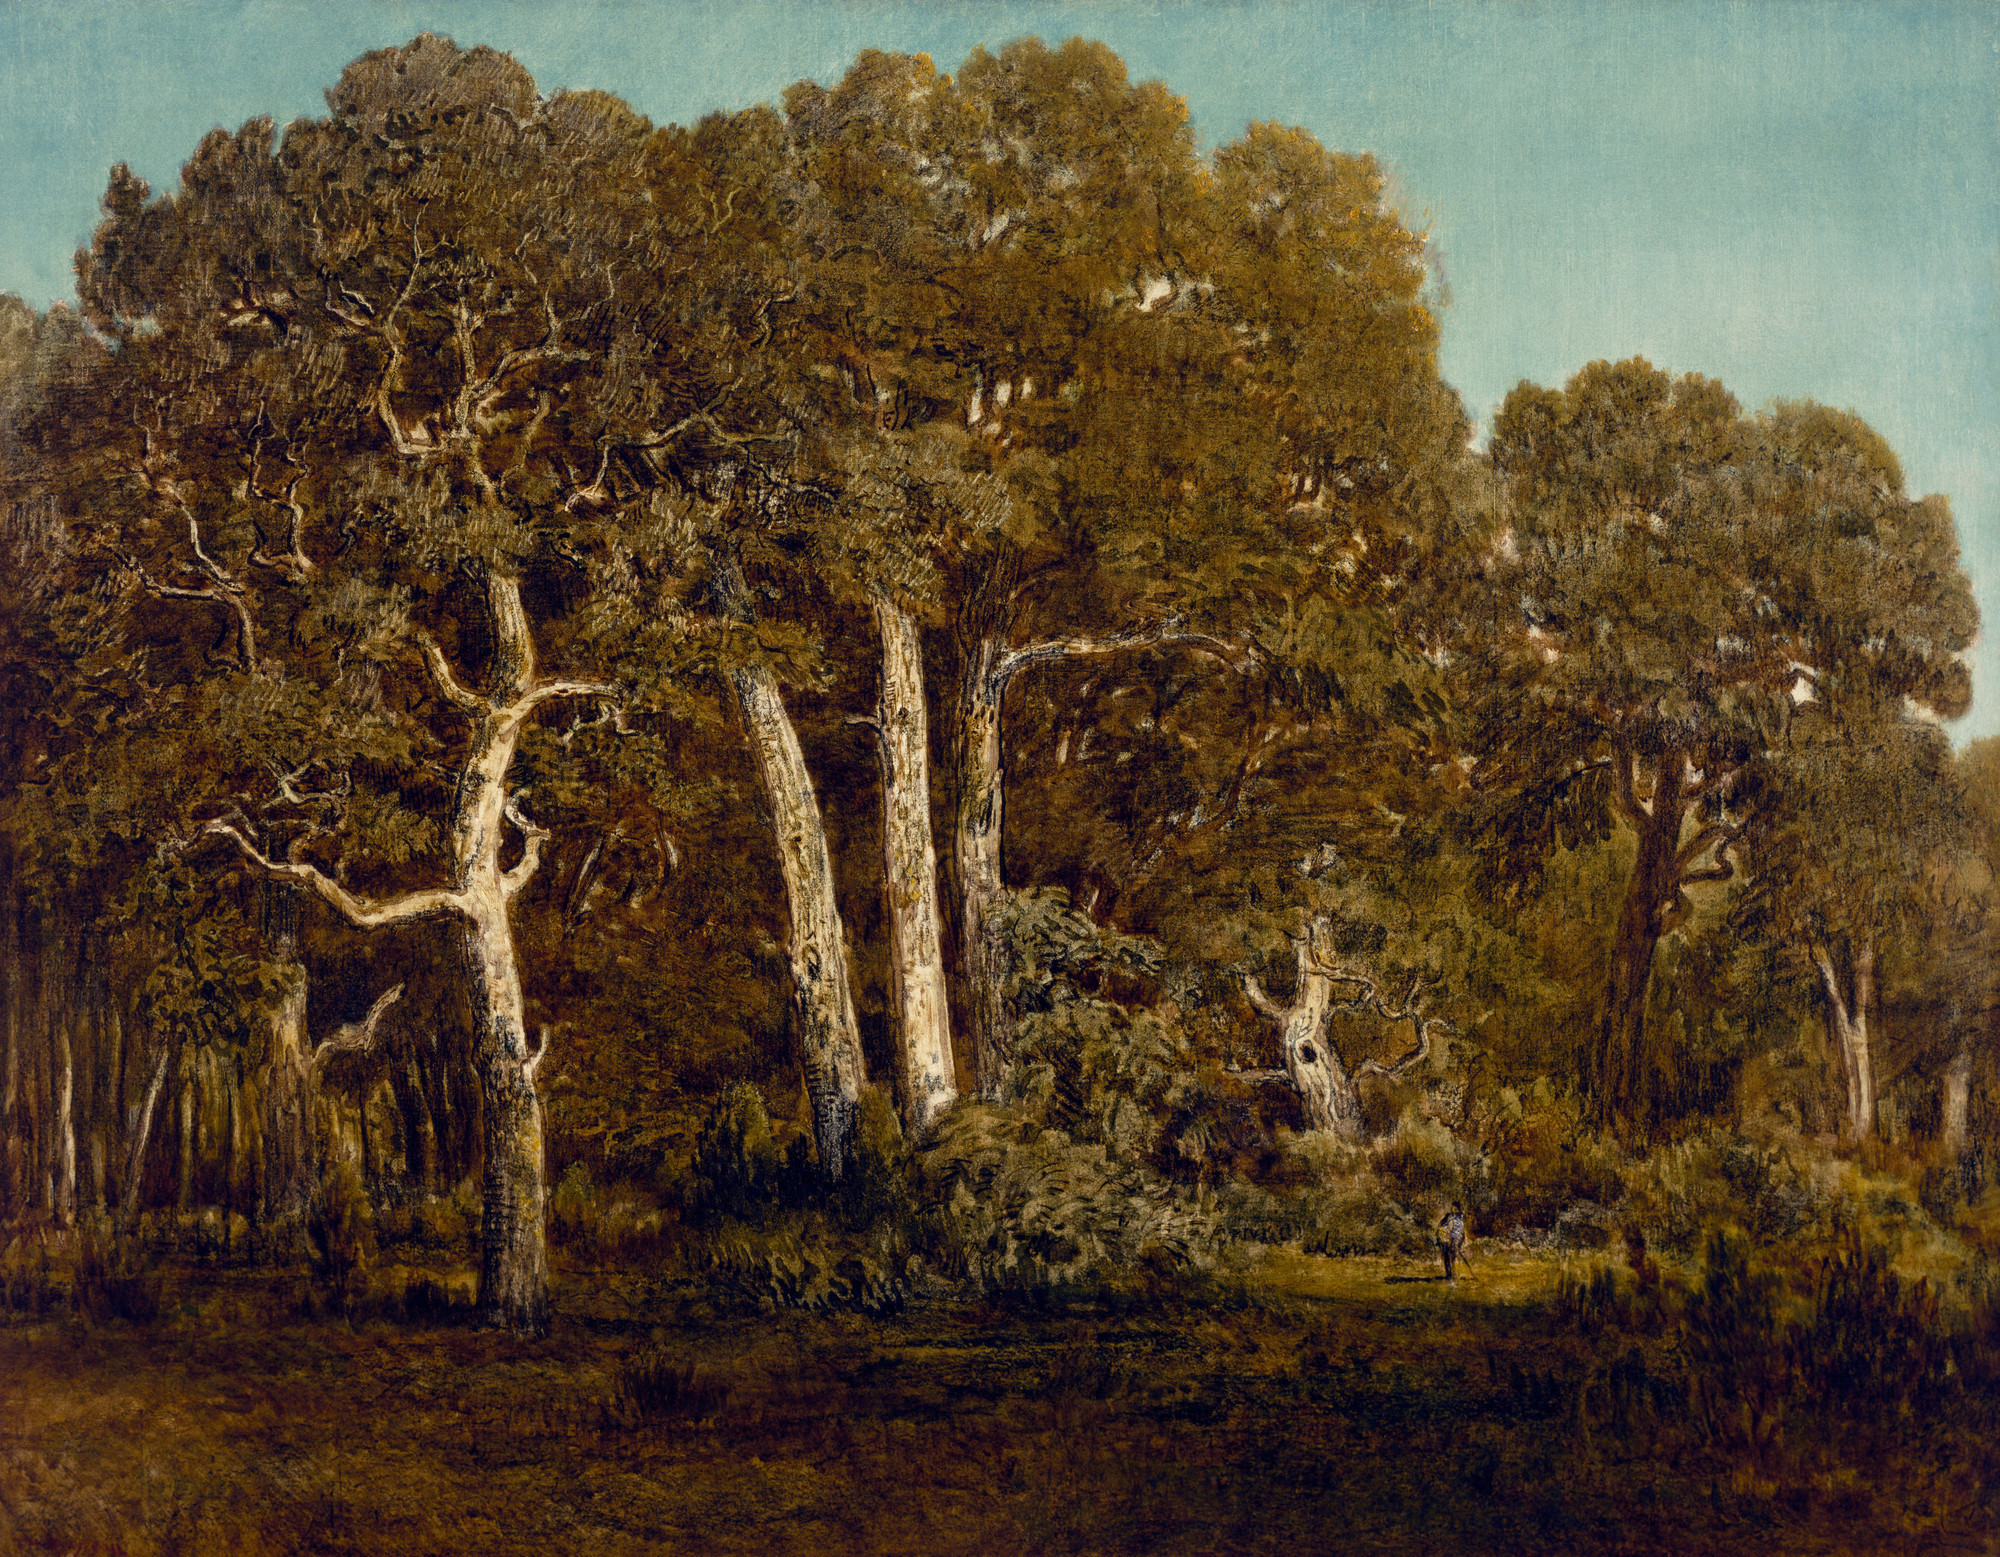 Getty exhibition makes a case for the enduring power of ... Theodore Rousseau